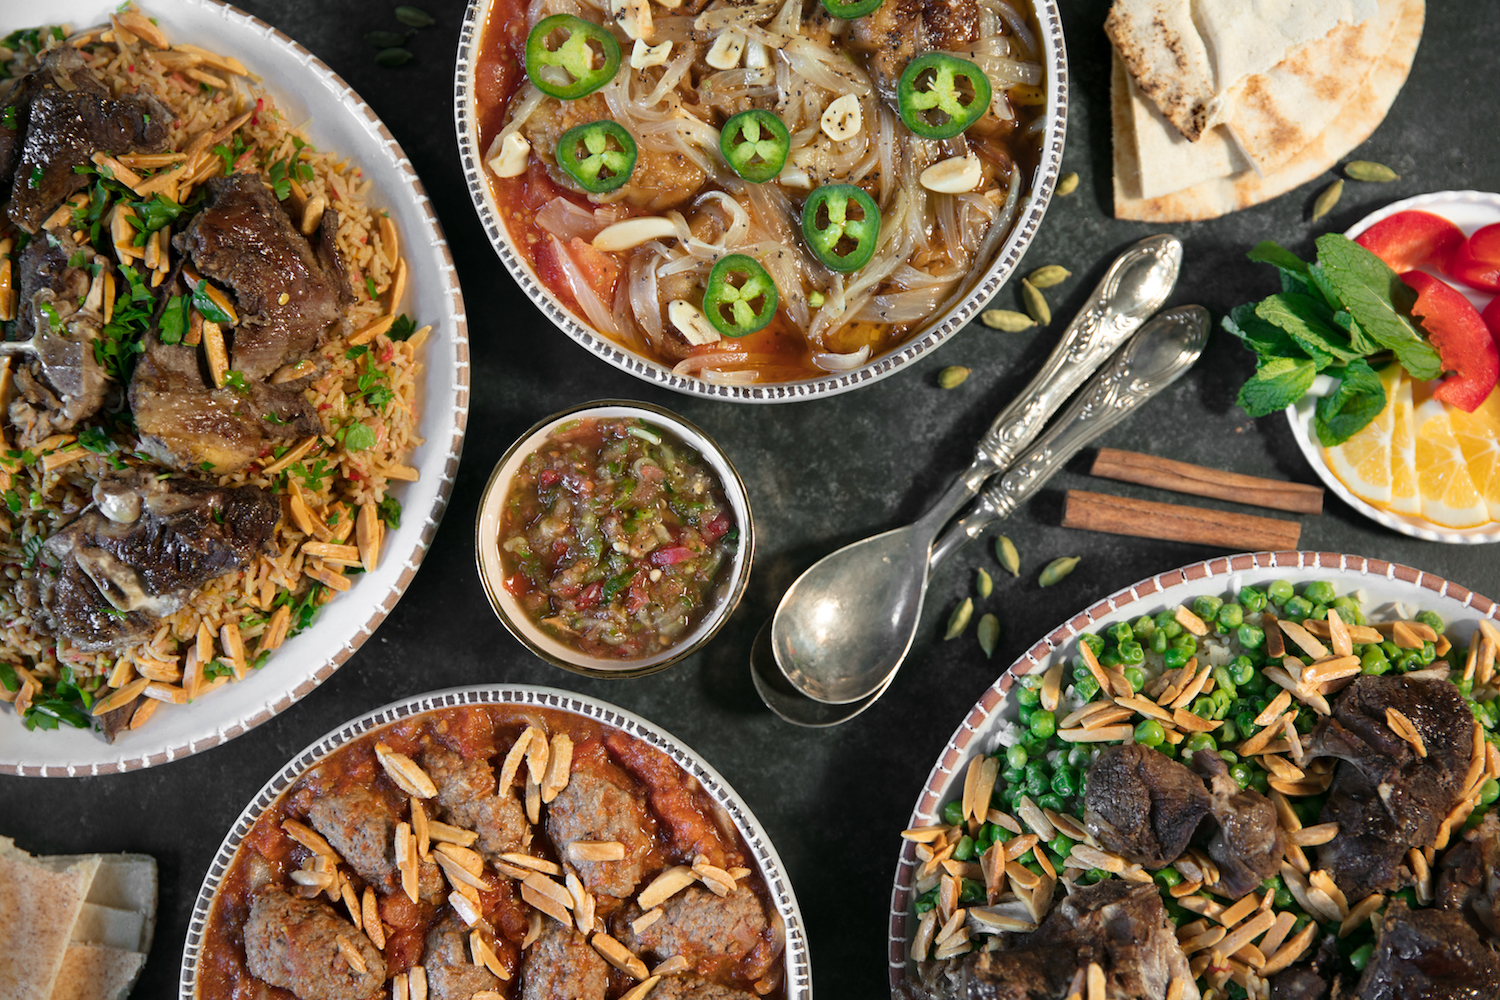 Old-Damascus-Fare-food_by-Molly-DeCoudreaux.jpg